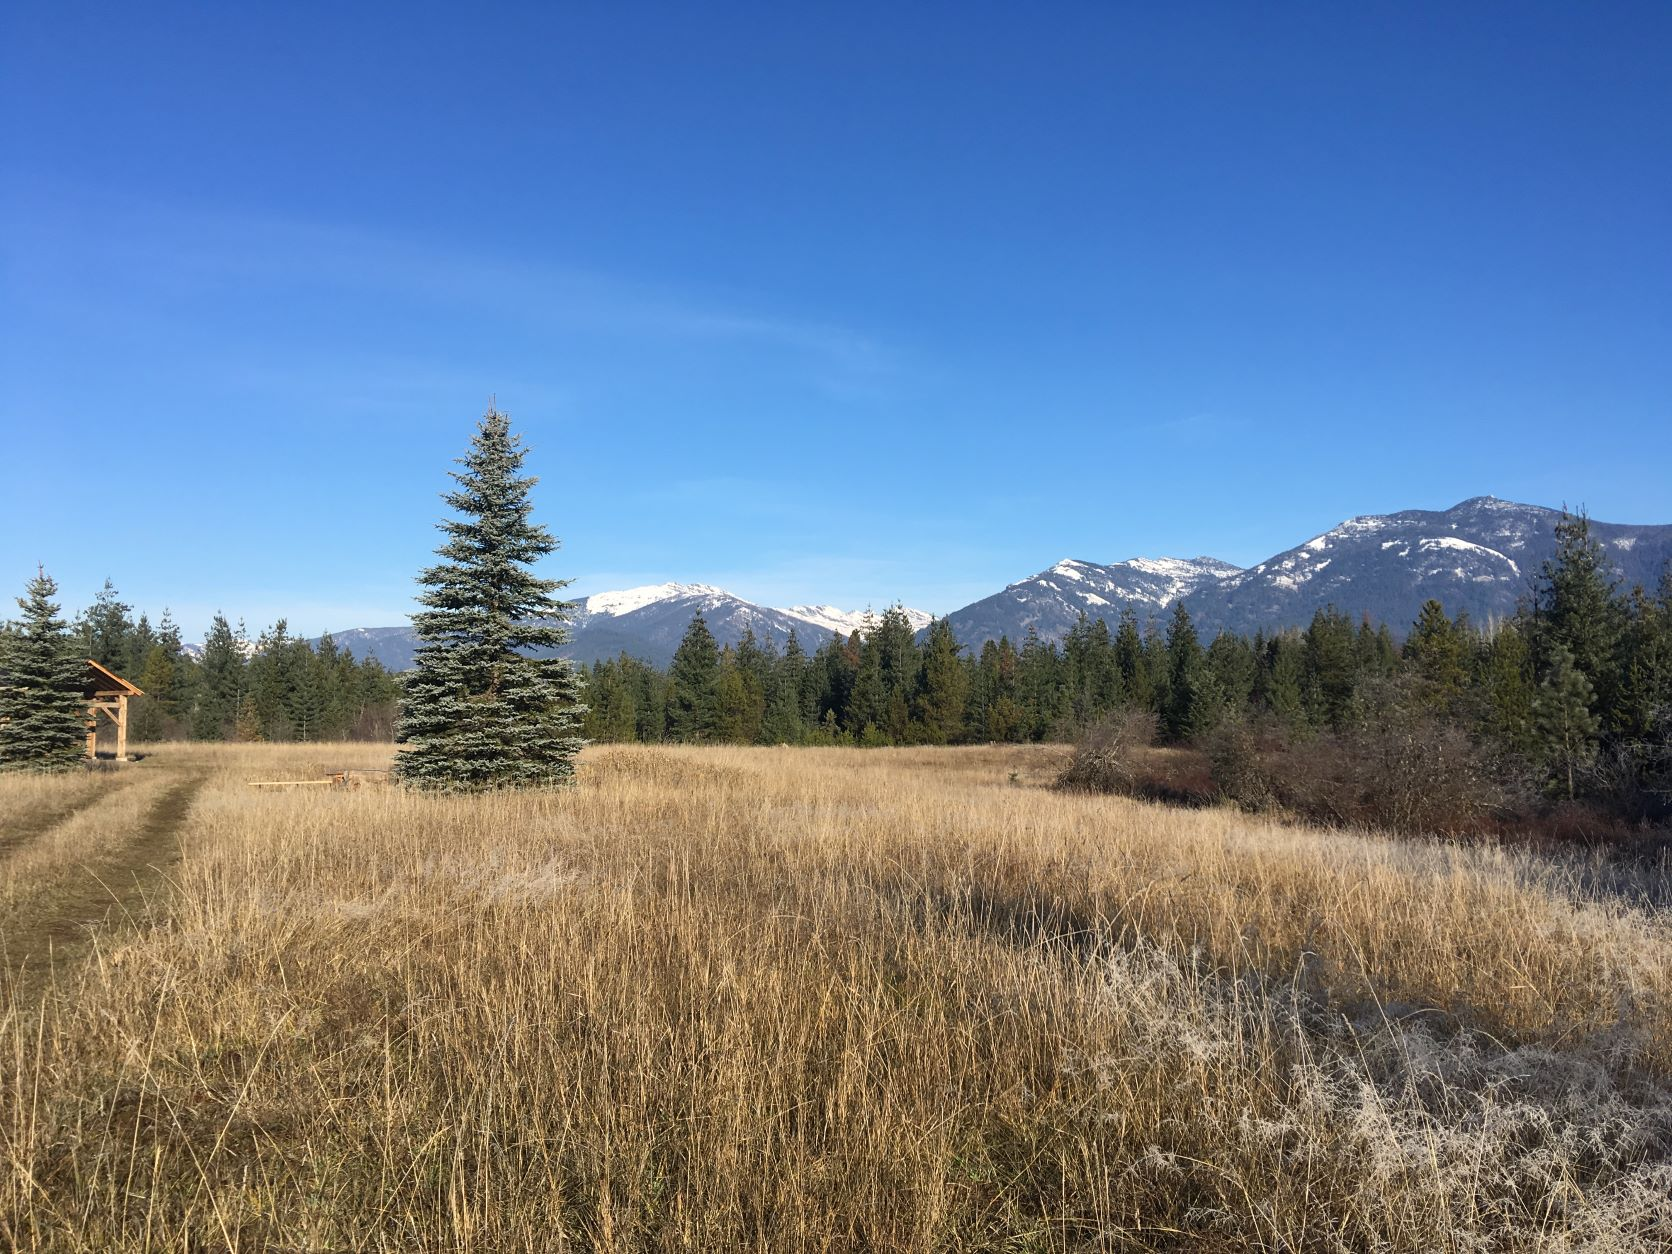 Majestic views of the Cabinets, pristine beaver habitat, and native plants make this place special. Grassy meadow with a few conifer trees and snowcapped peaks in the far distance.